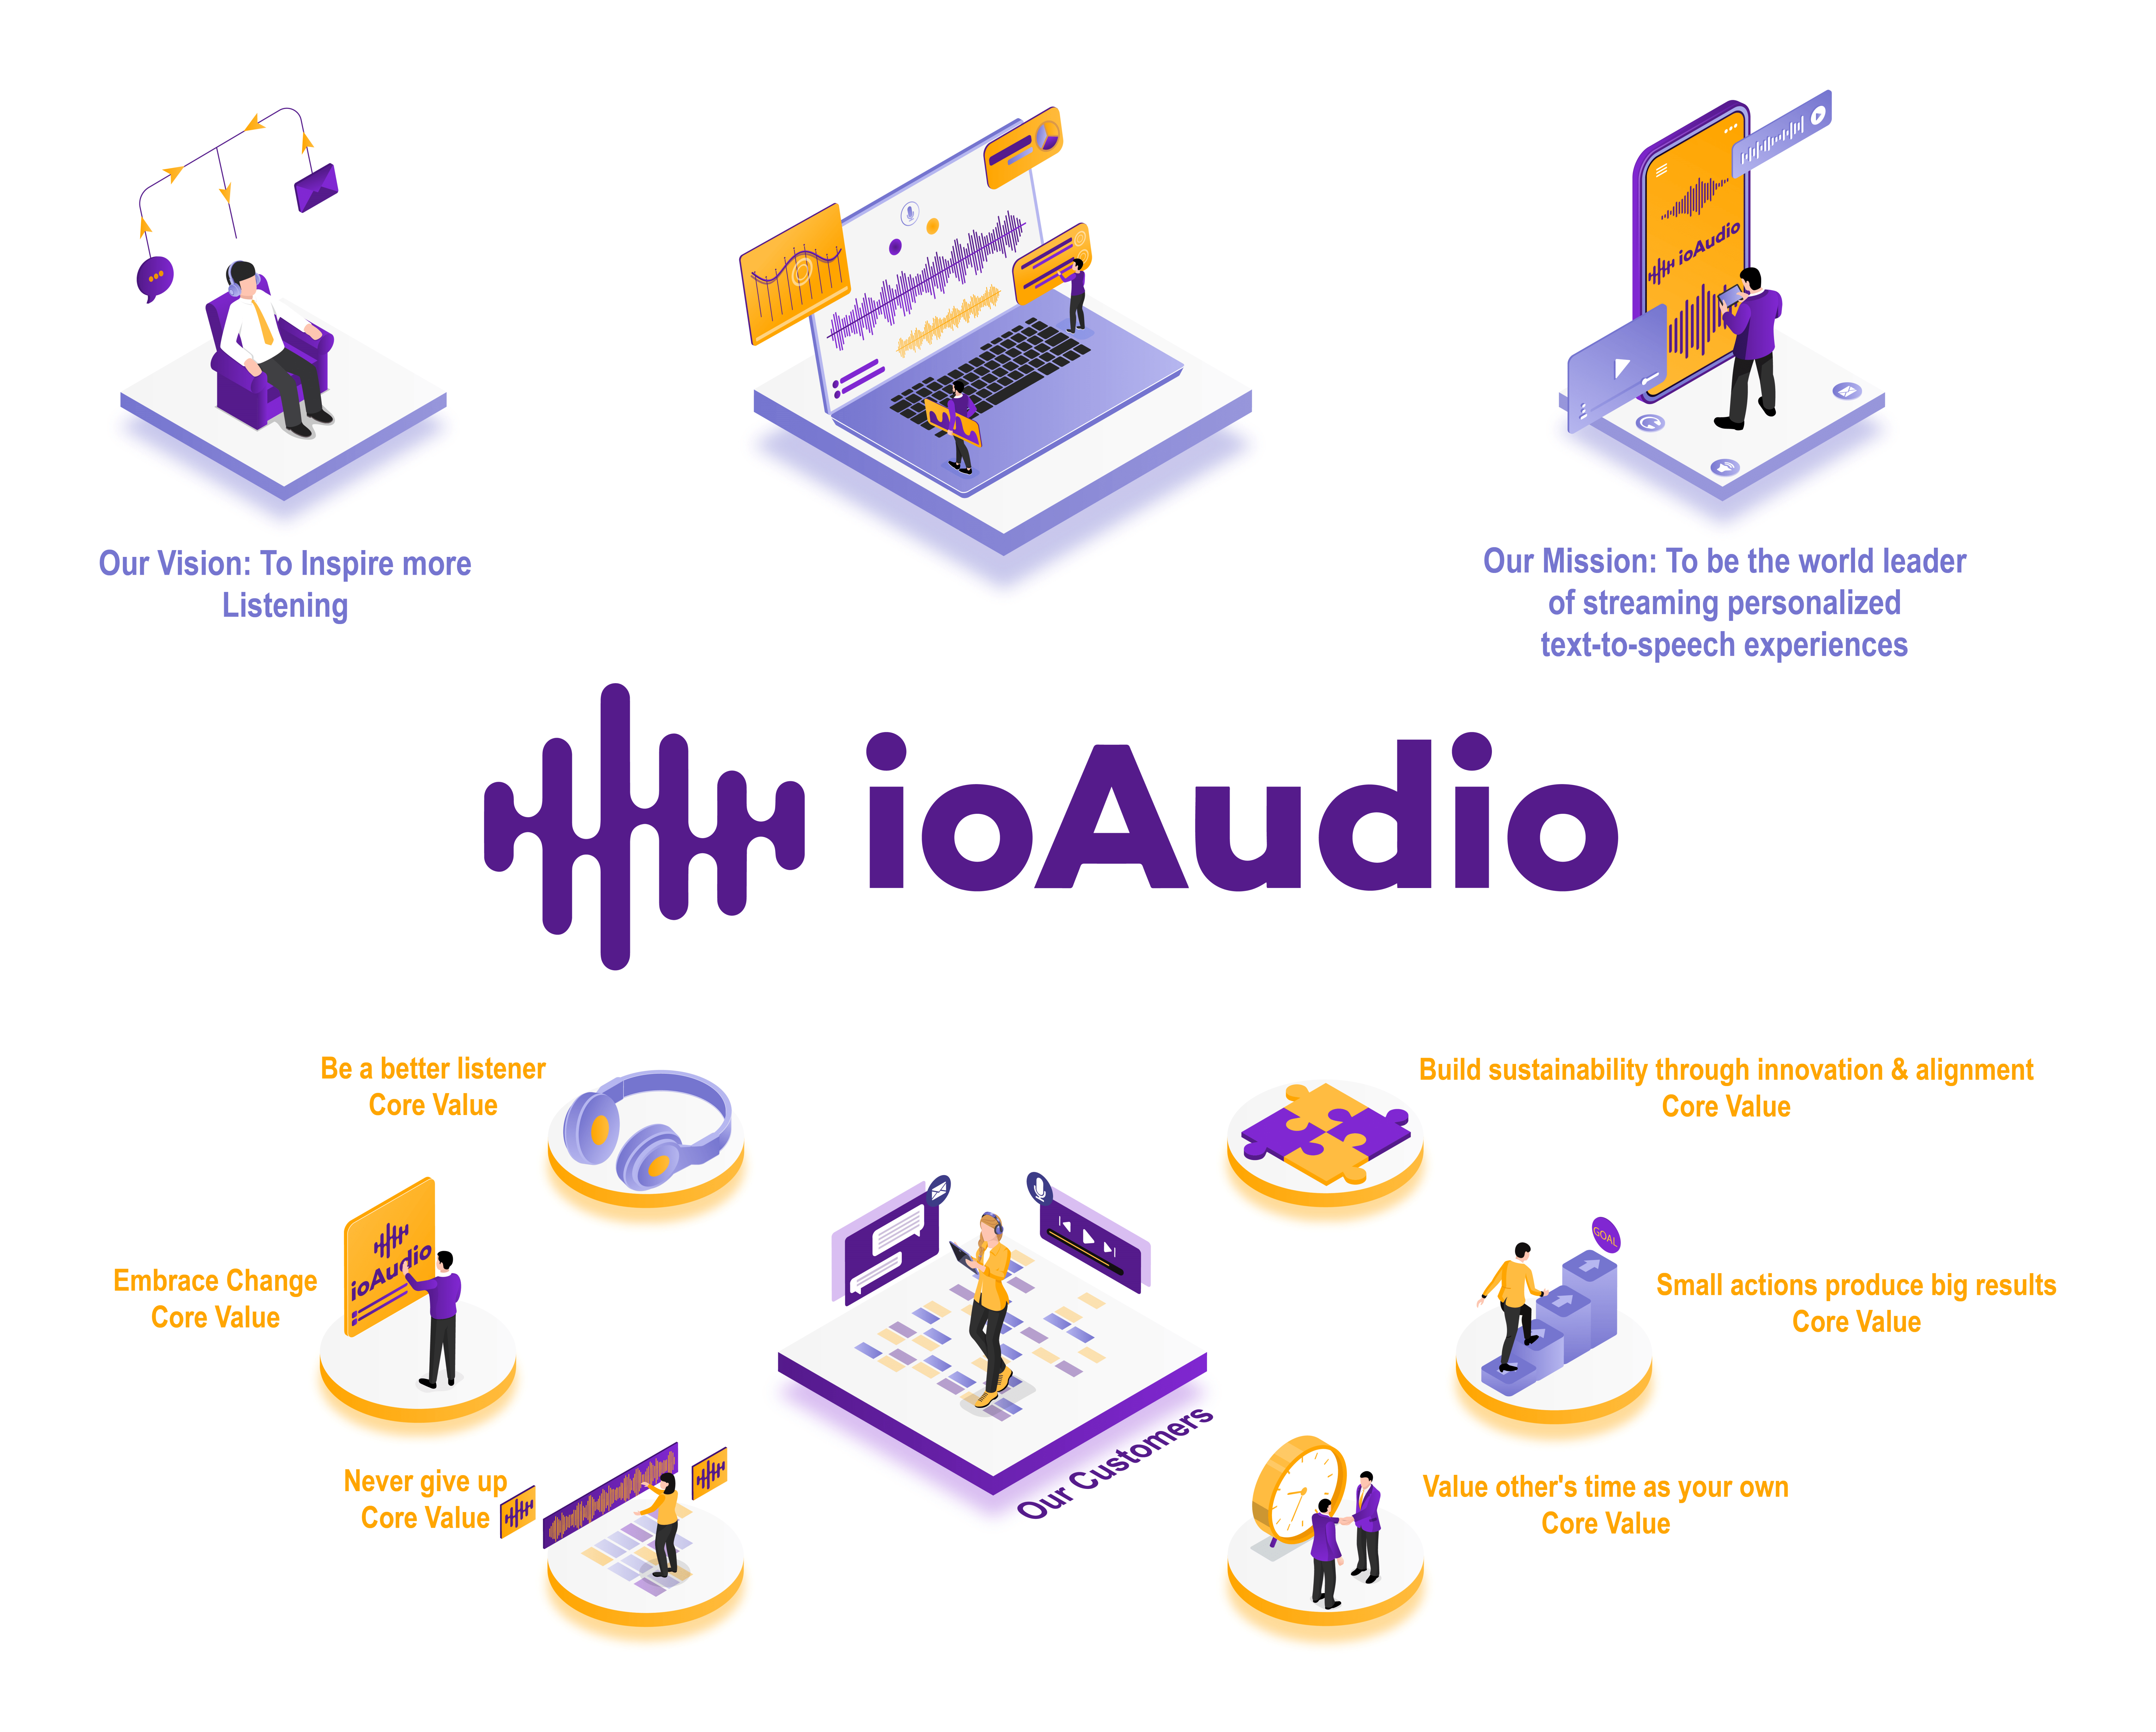 ioAudio's Vision, Mission, and Core Values